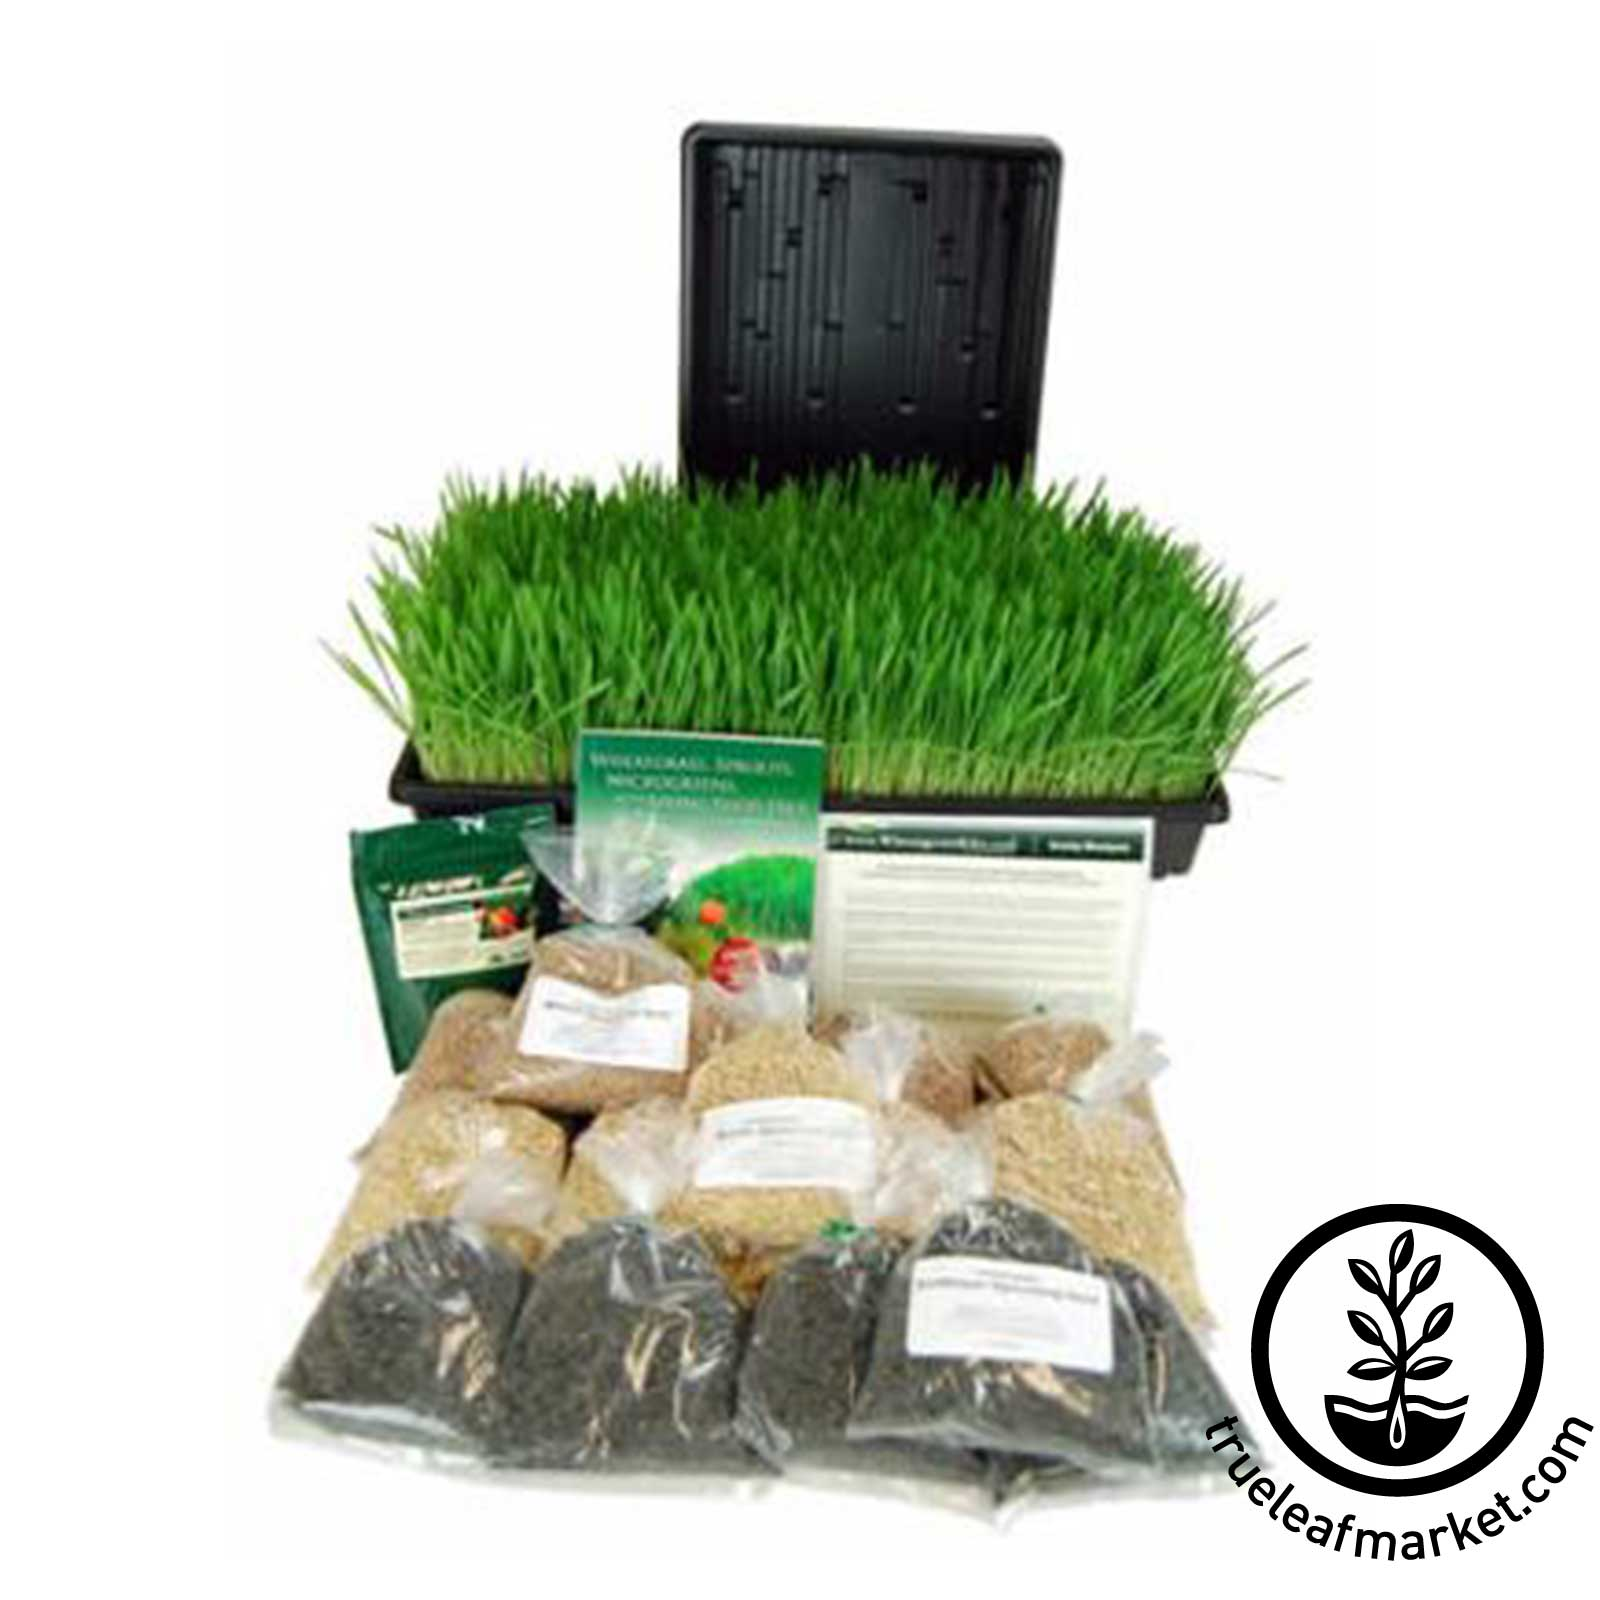 Deluxe Wheatgrass Barleygrass and Sunflower Greens Kit wheat grass, wheatgrass, barleygrass, sprouts, broccoli sprouts, wheat seed, ann wigmore, wheatgrass kit, grow, growing, juicing, wheat grass juice, wheat grass seed